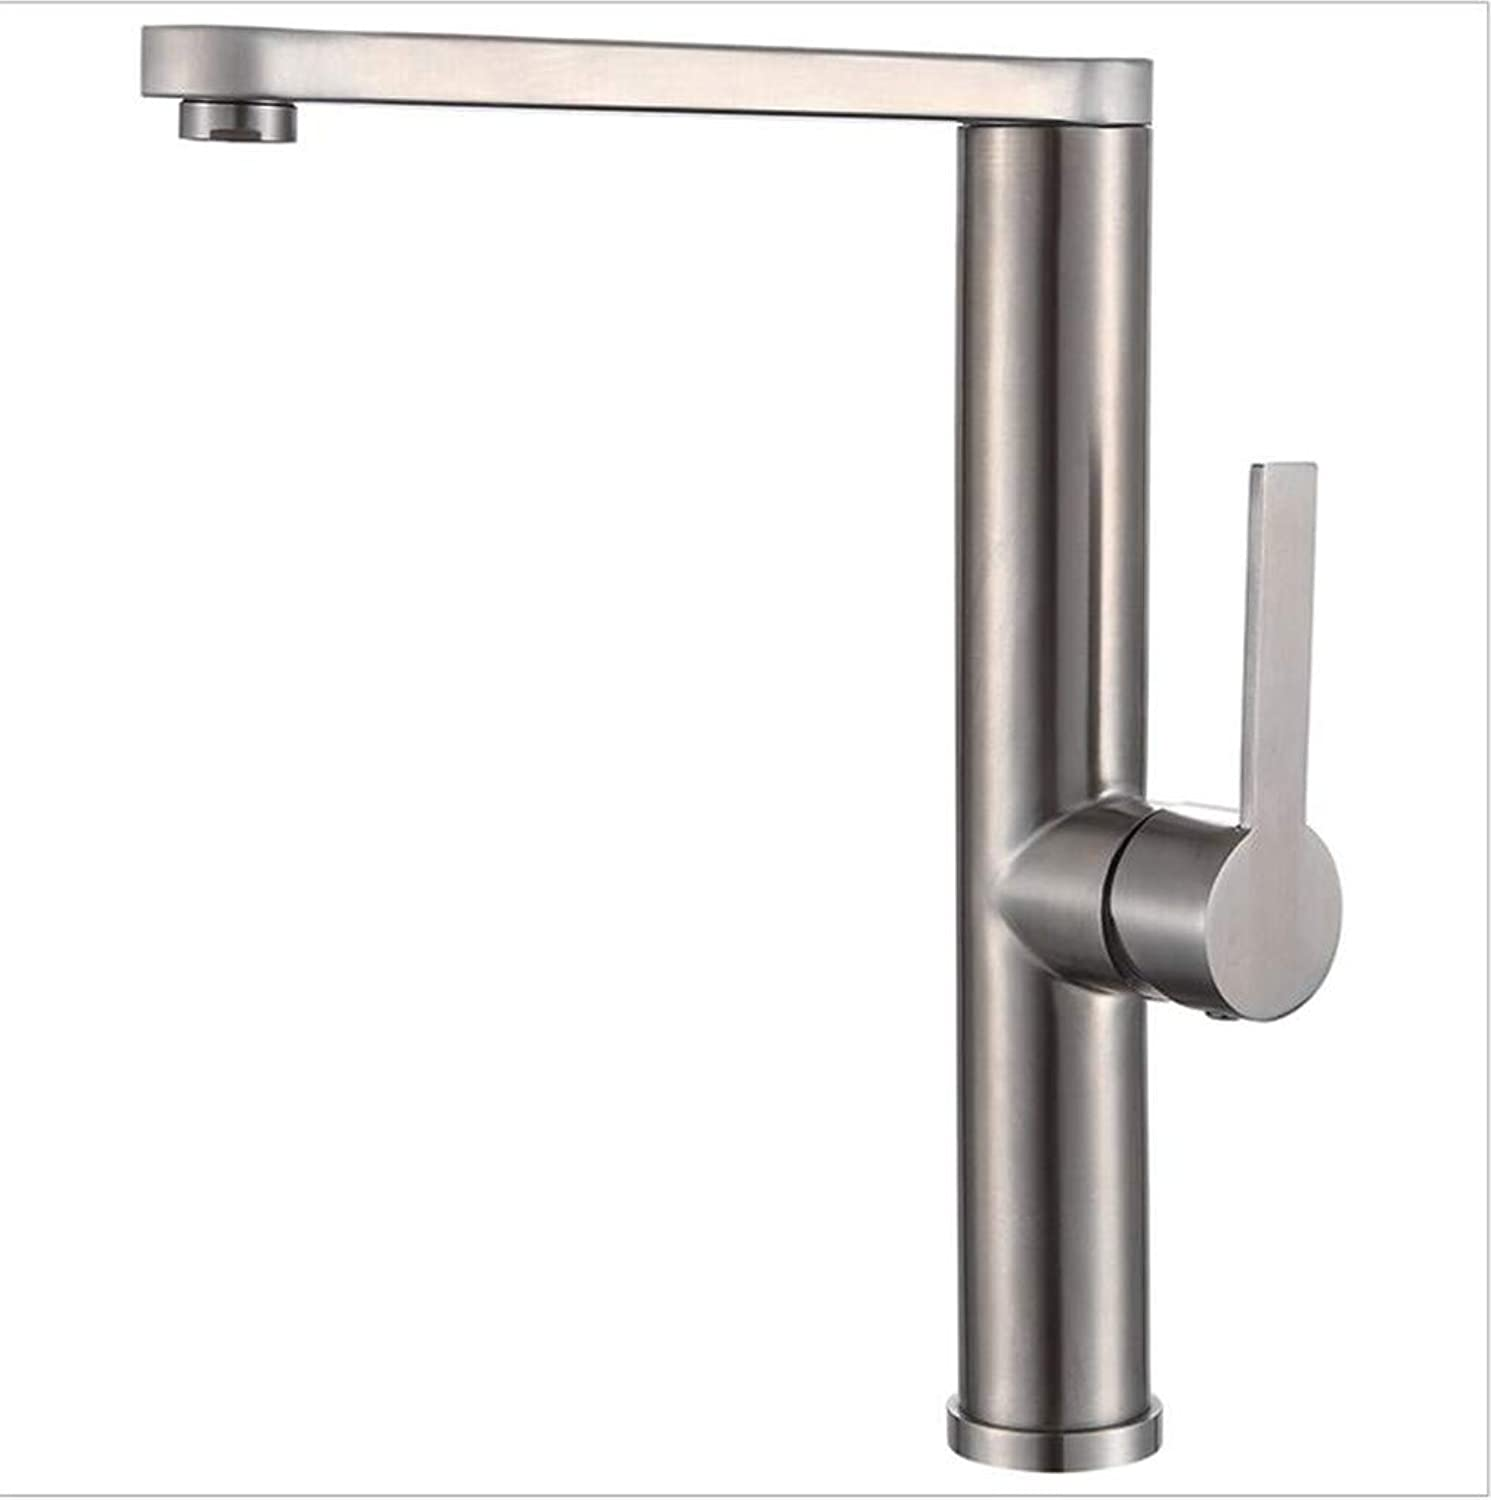 Bathroom Sink Basin Lever Mixer Tap Universal redary Point Three-Way Cold and Hot Water Faucet Kitchen Washing Pot Faucet